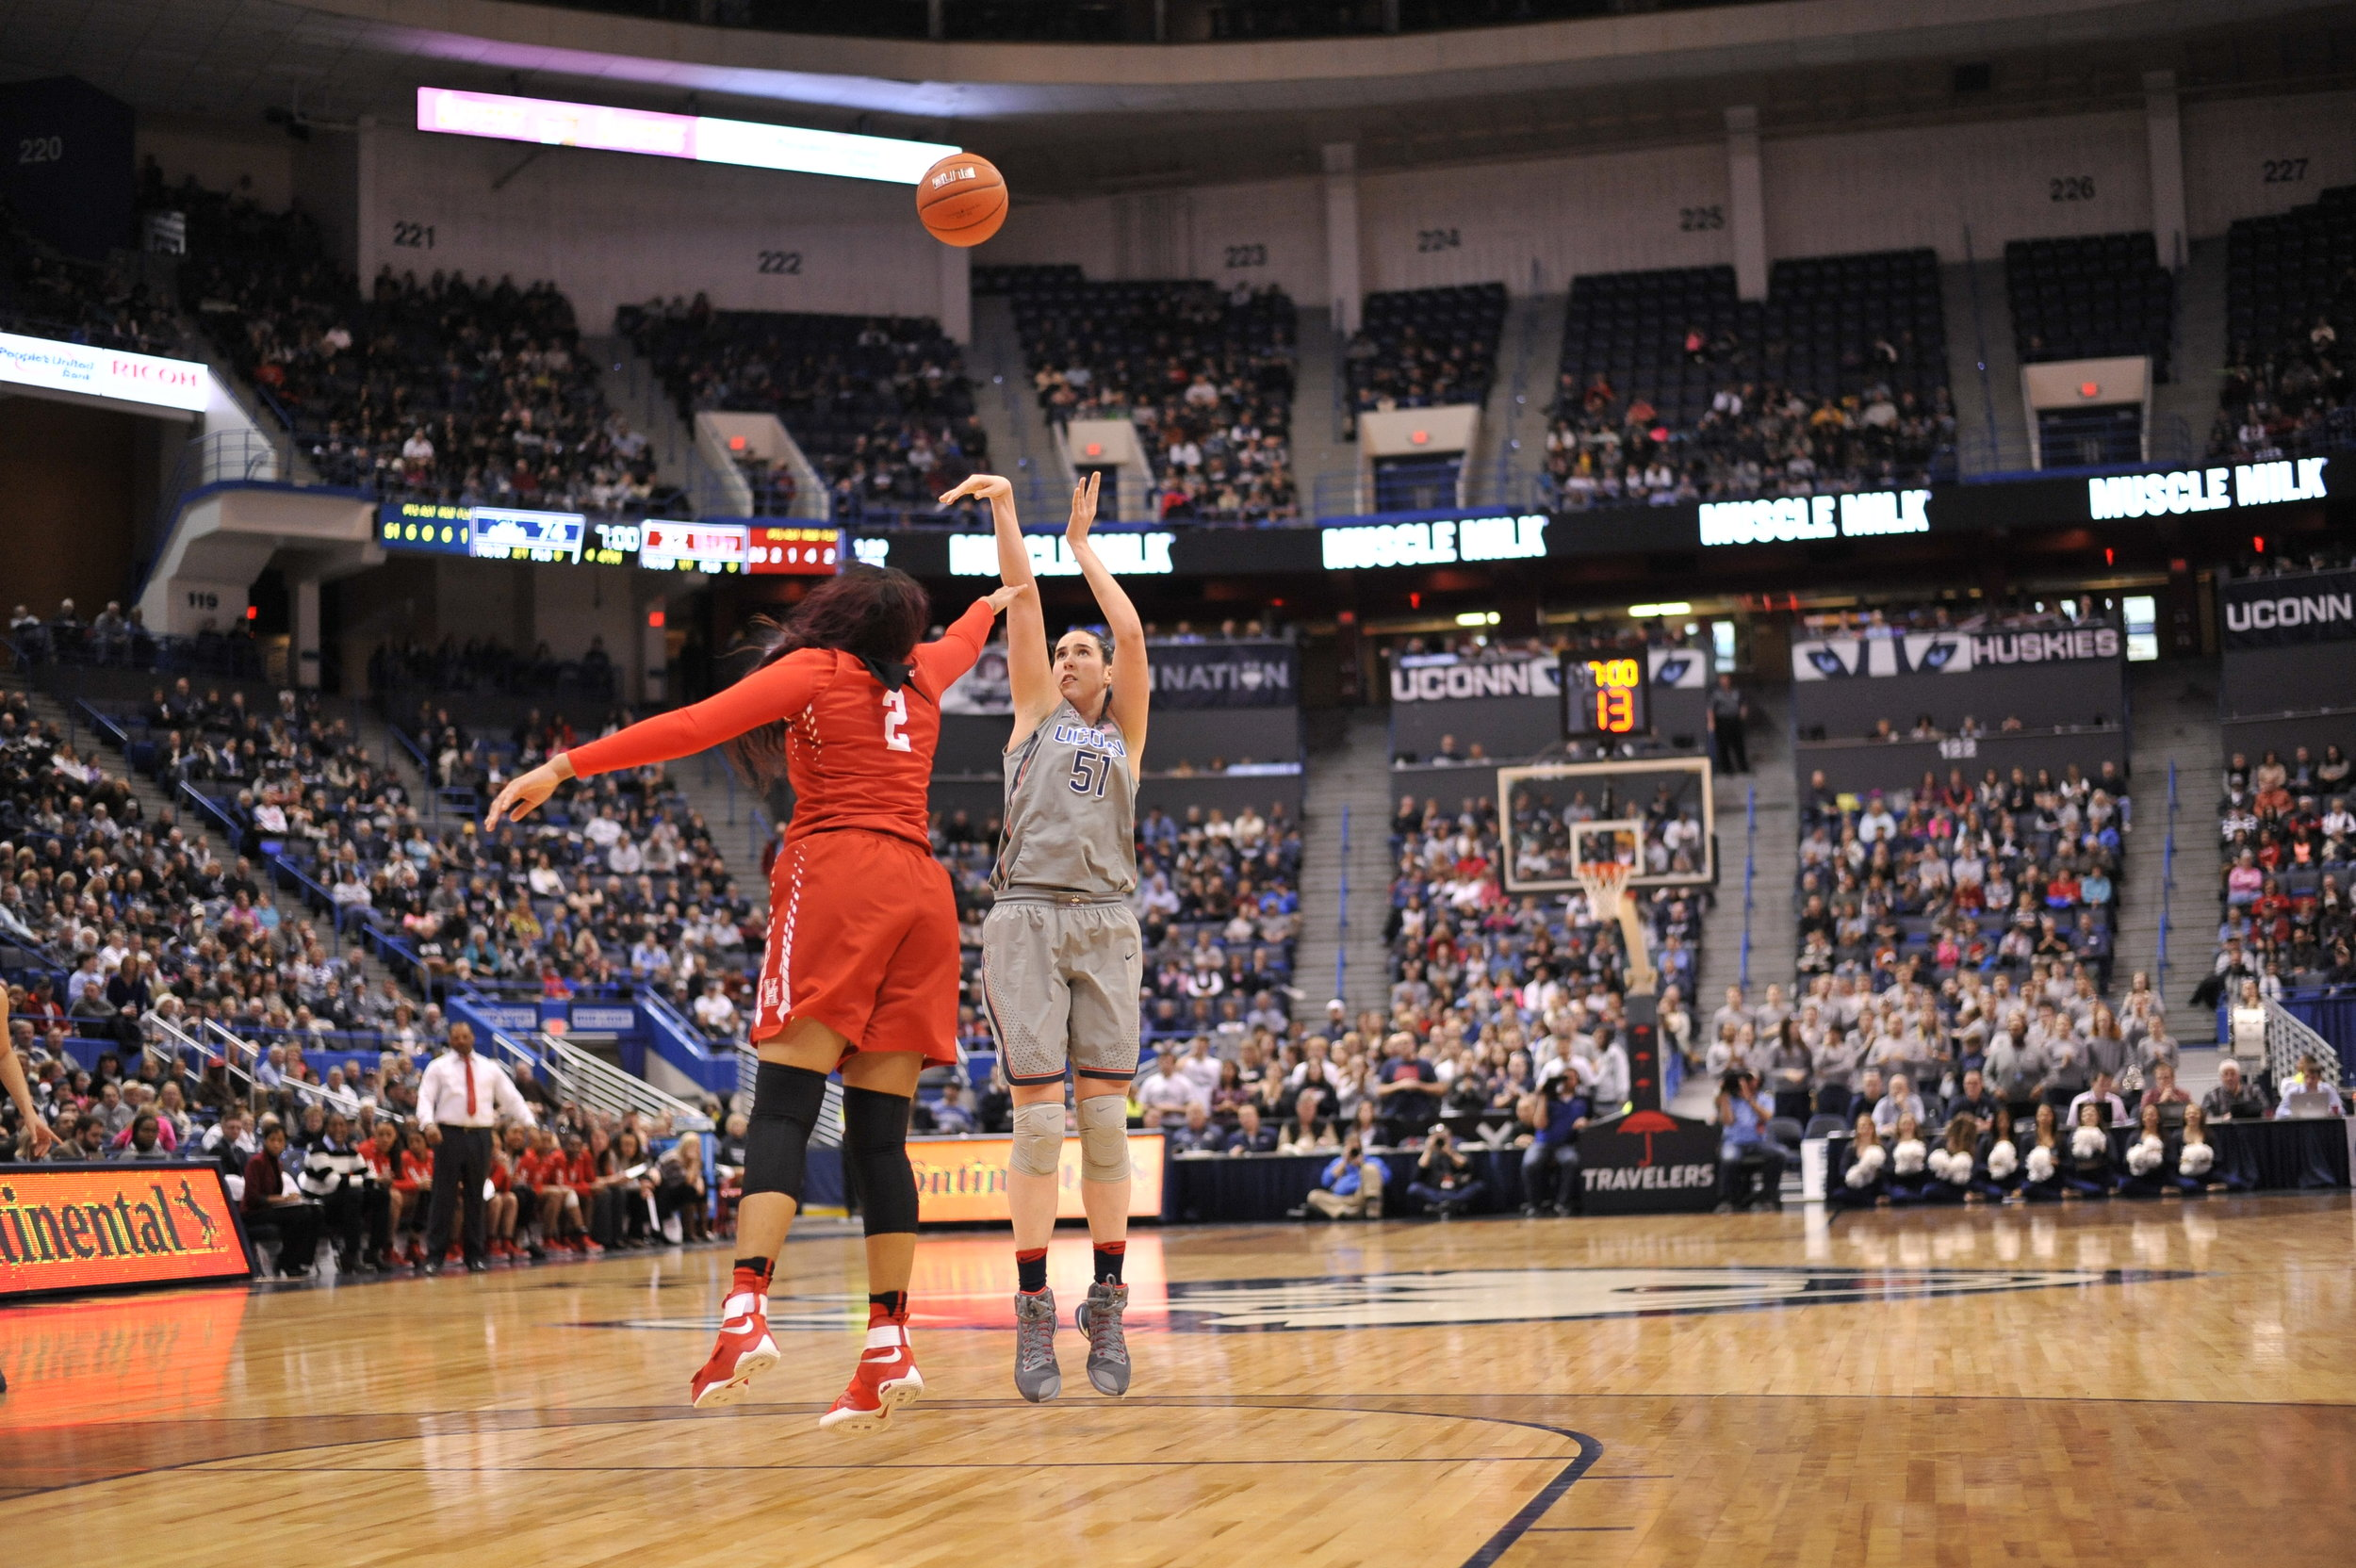 Natalie Butler, who scored 10 points for the Huskies, takes a jump shot. (Jason Jiang/The Daily Campus)